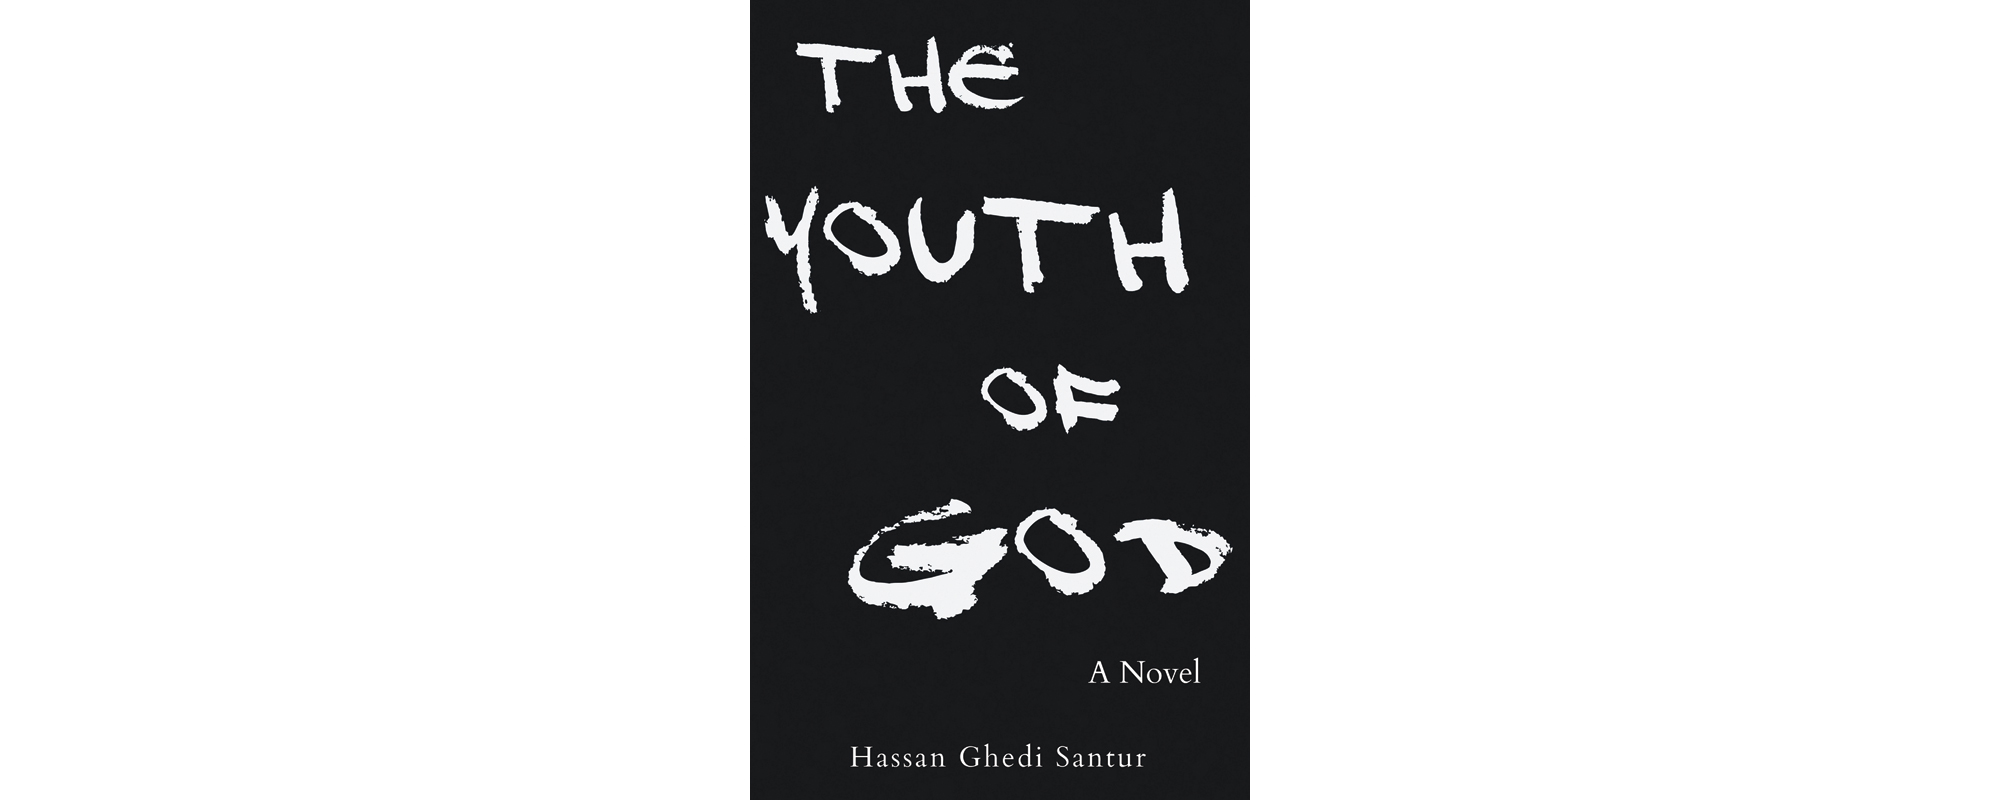 The Youth of God Hassan Ghedi Santur